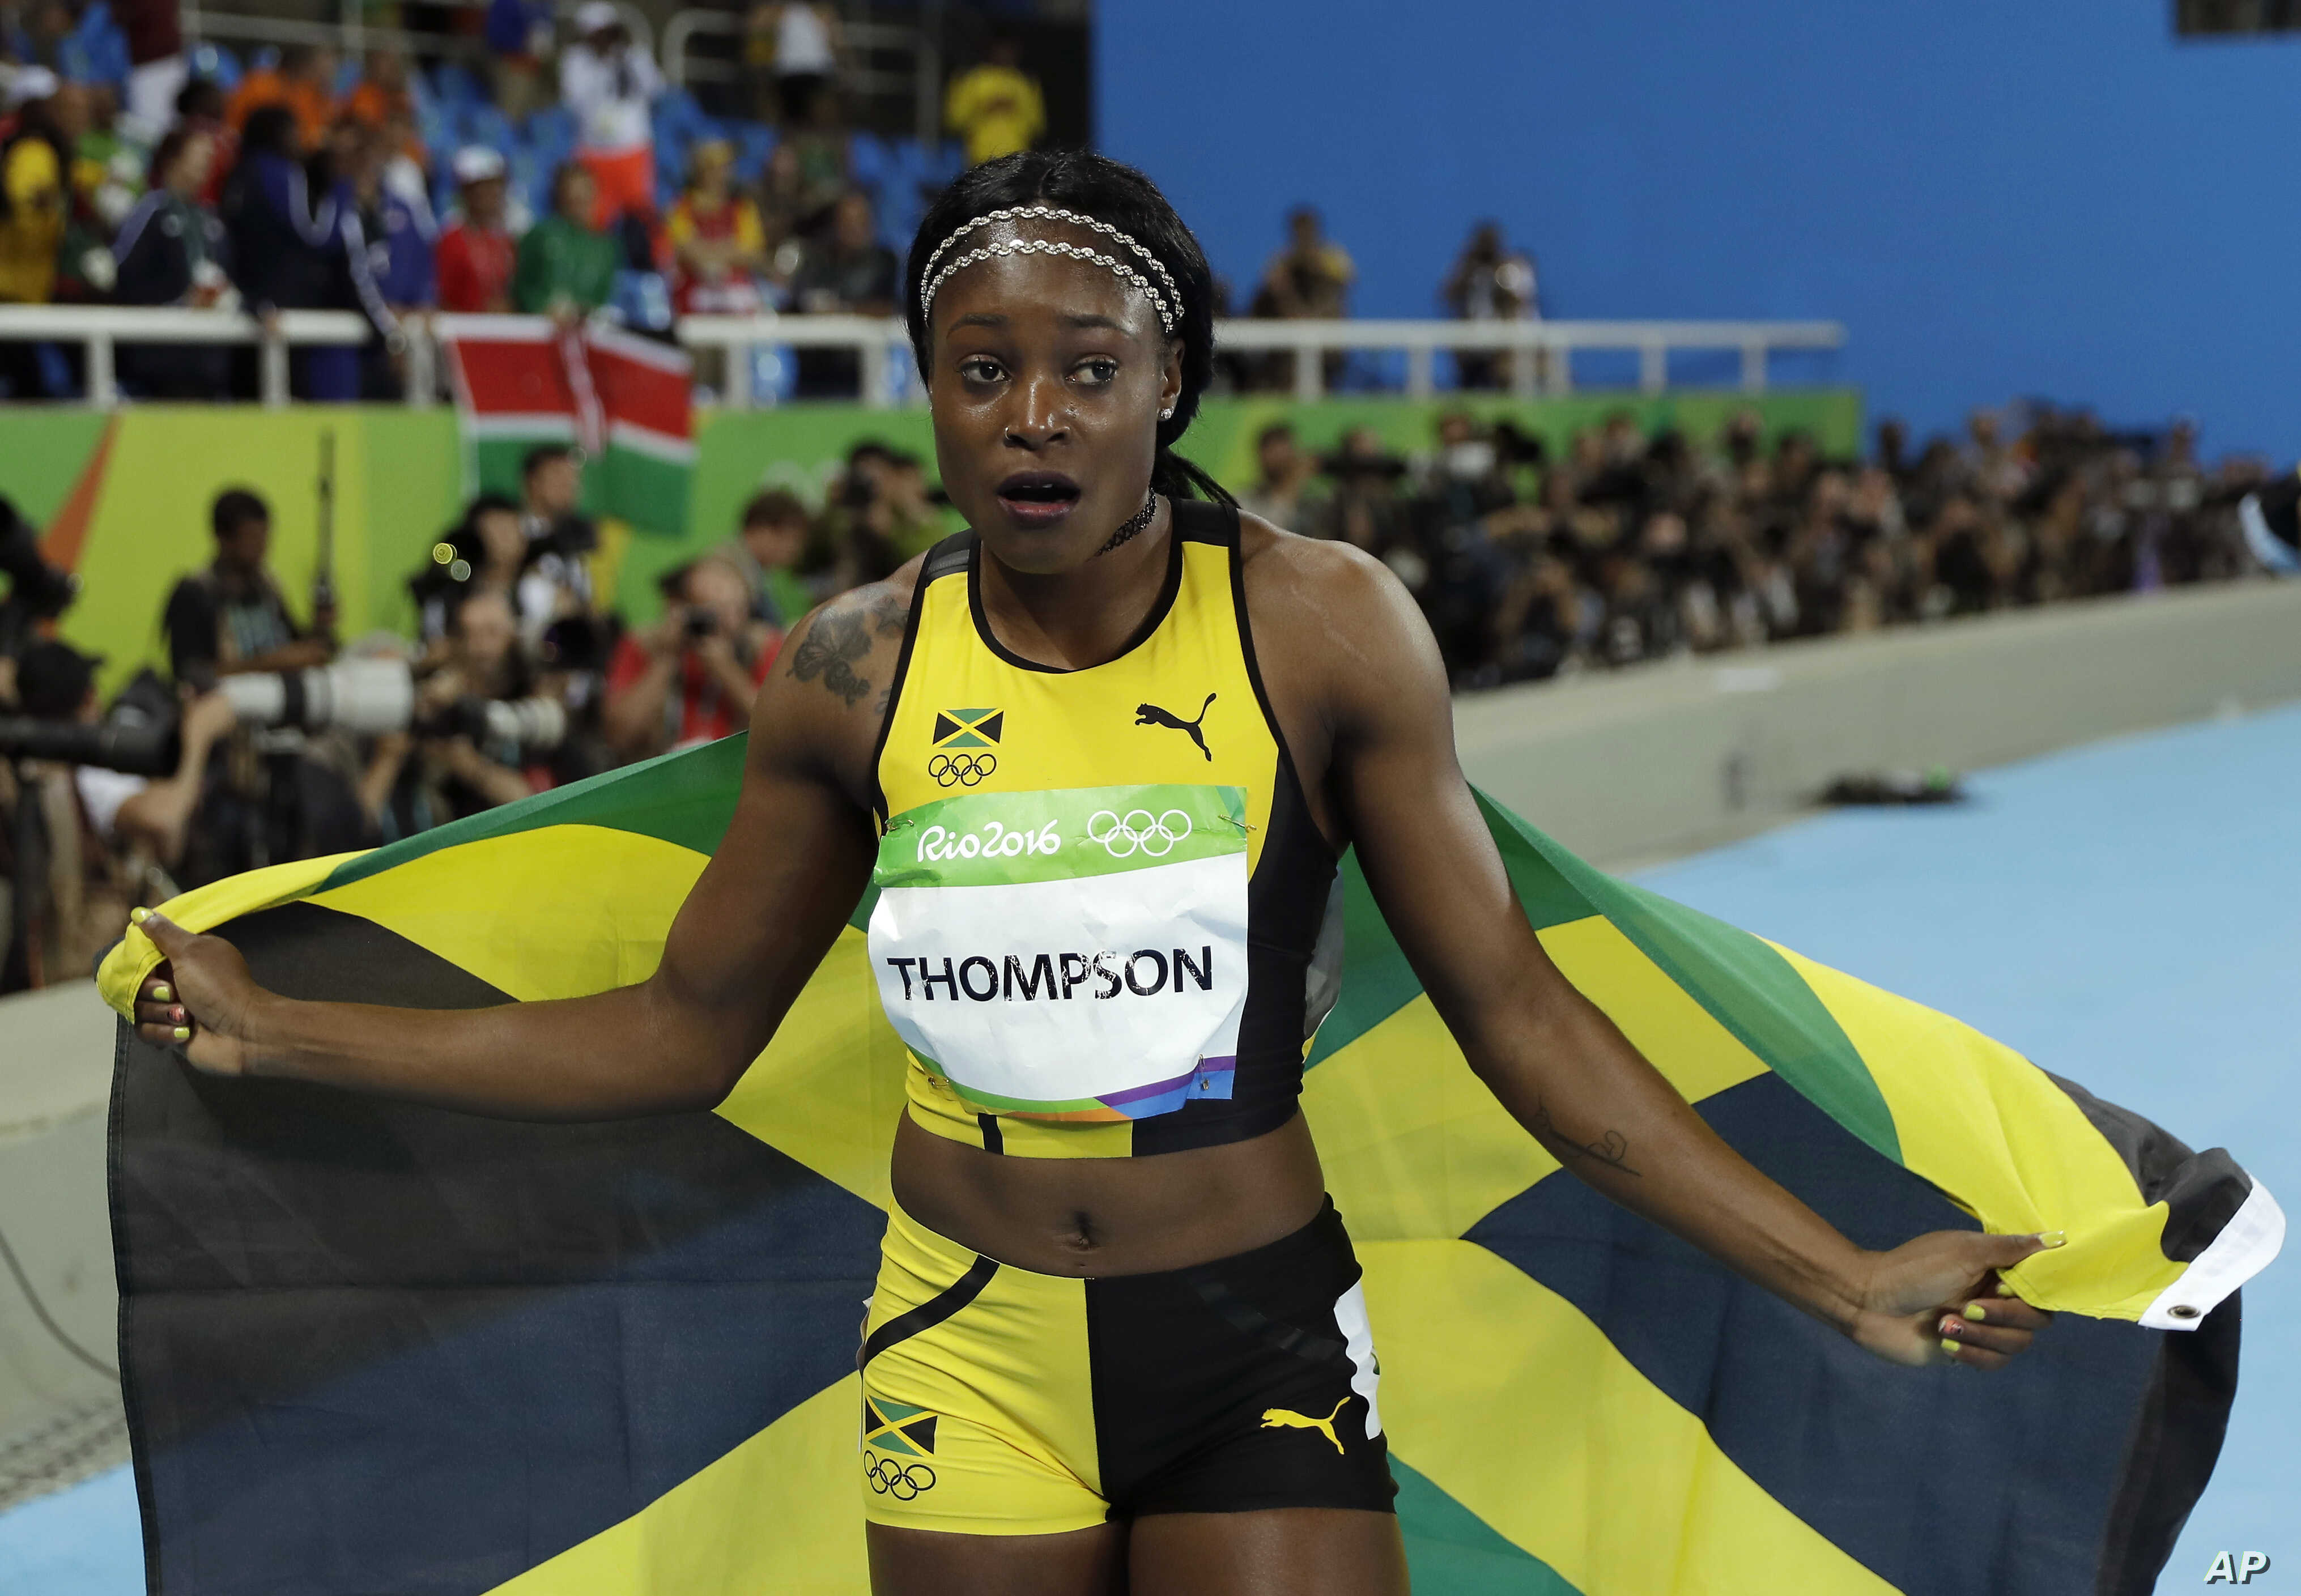 Rio Olympics Athletics: Jamaica's Elaine Thompson celebrates with the Jamaican flag after winning gold in the women's 100-meter final during the athletics competitions in the Olympic stadium of the 2016 Summer Olympics in Rio de Janeiro, Brazil, Satu...